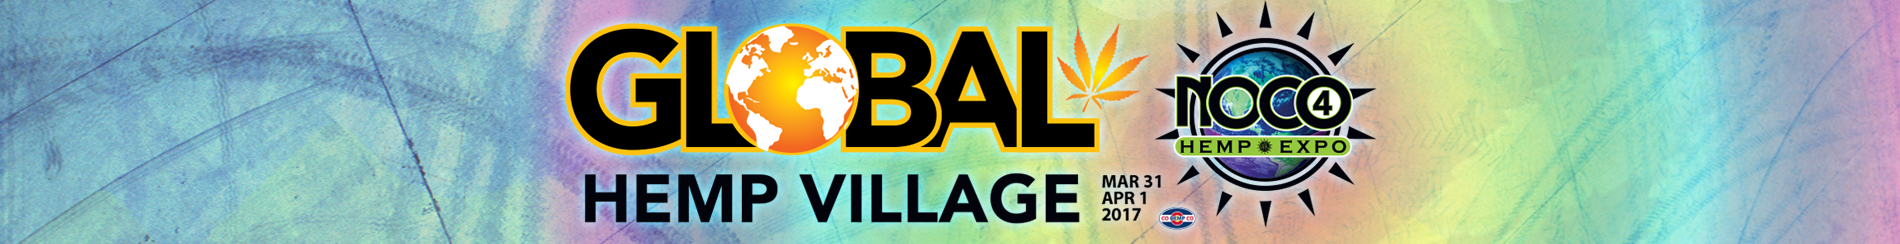 Global Hemp Village, international hemp speakers, exhibitors, products